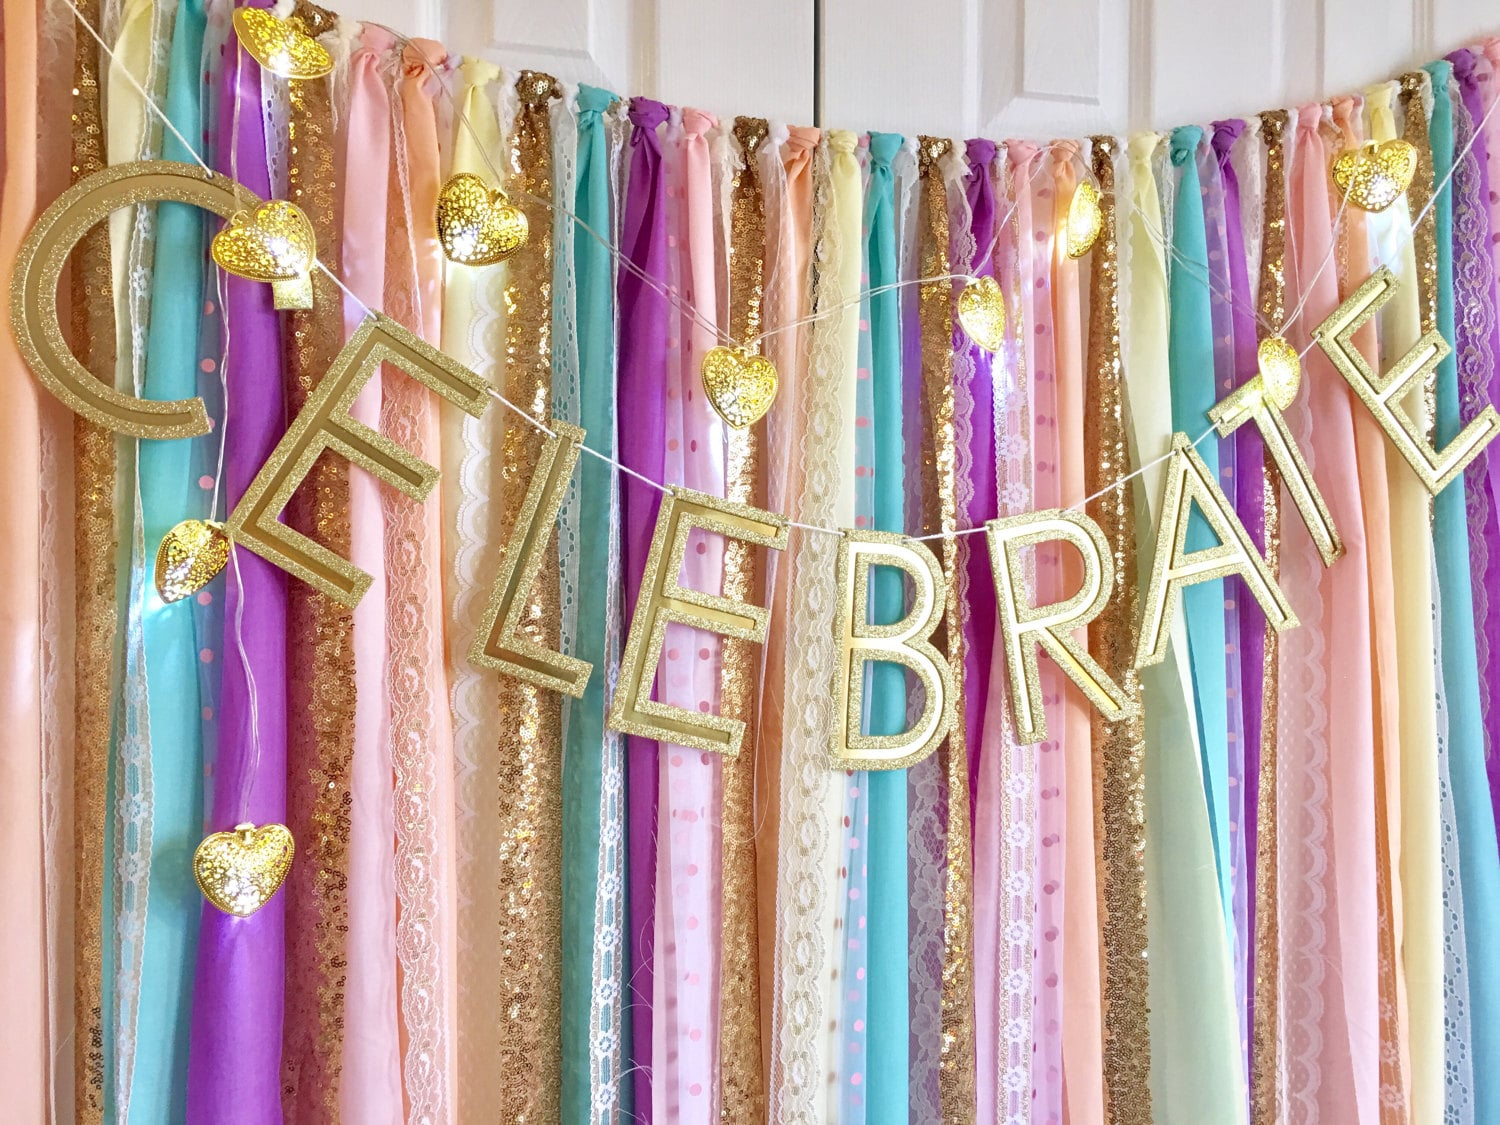 Unicorn Rainbow Pastels & Gold Sequin Garland Backdrop - birthday, baby shower, wedding ... Fabric, Sequin and Lace